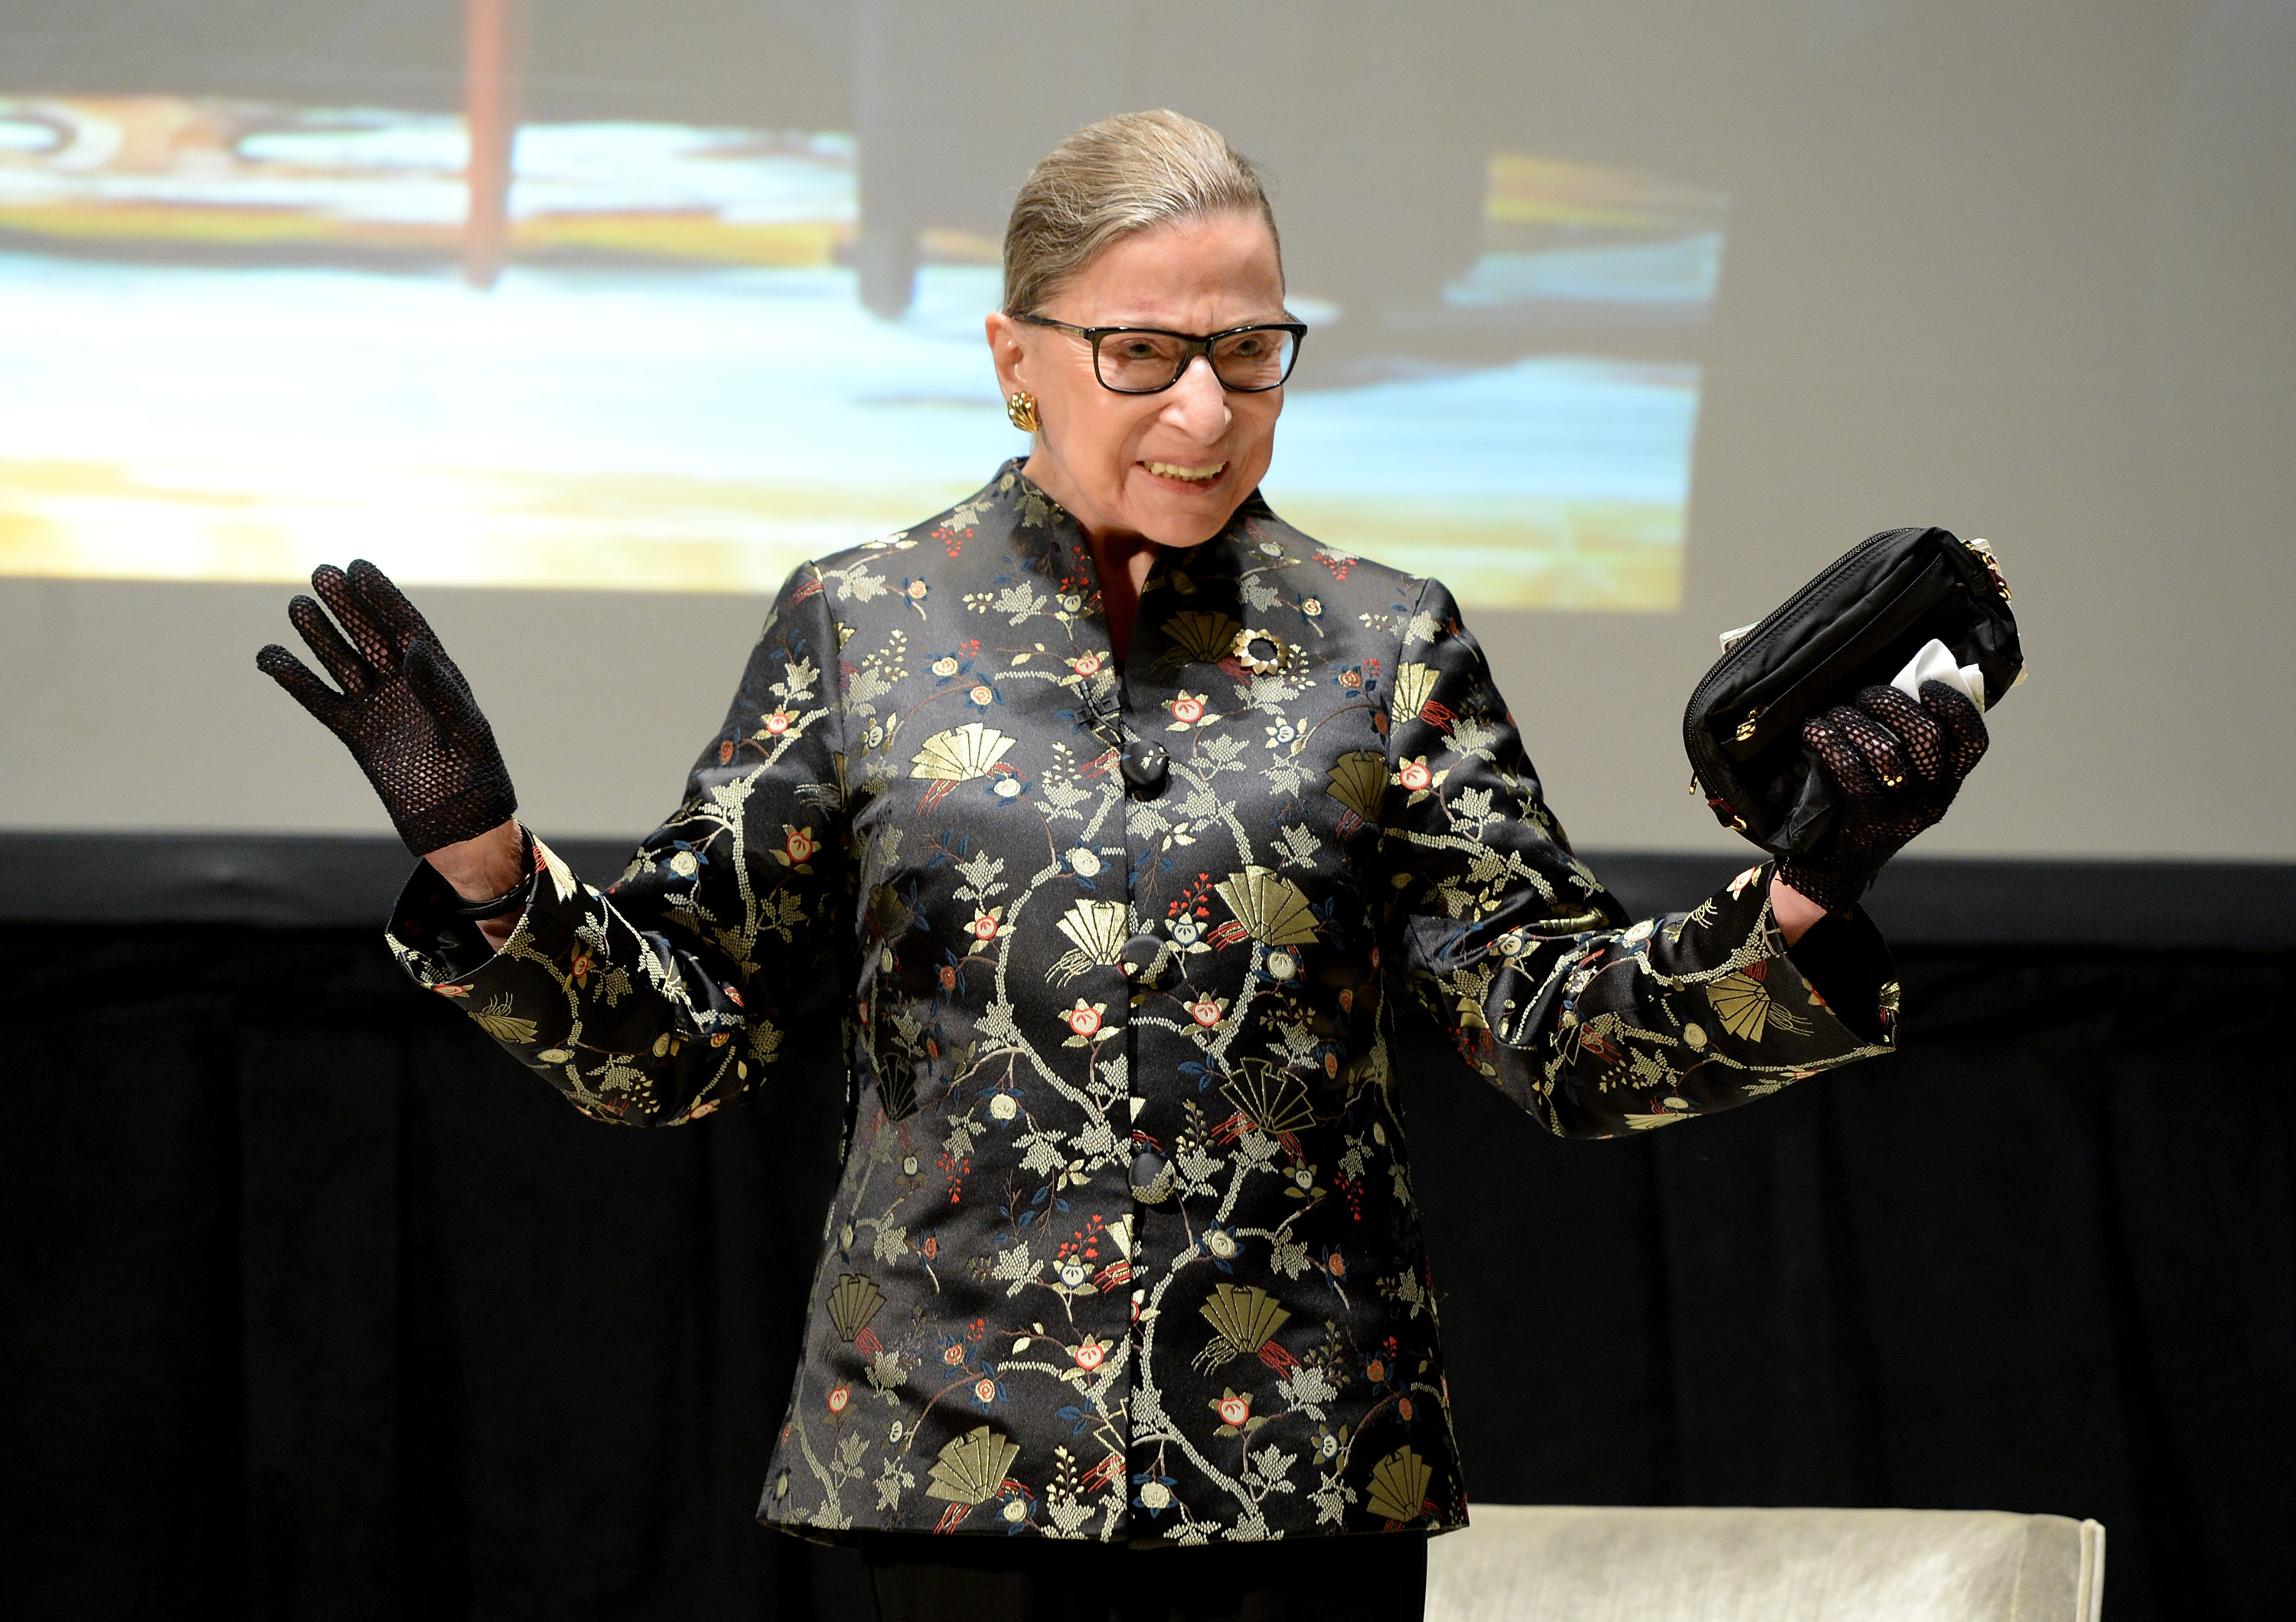 Supreme Court Justice Ruth Bader Ginsburg, pictured here on September 21, 2016 in New York City, seems well-accustomed to basking in applause.